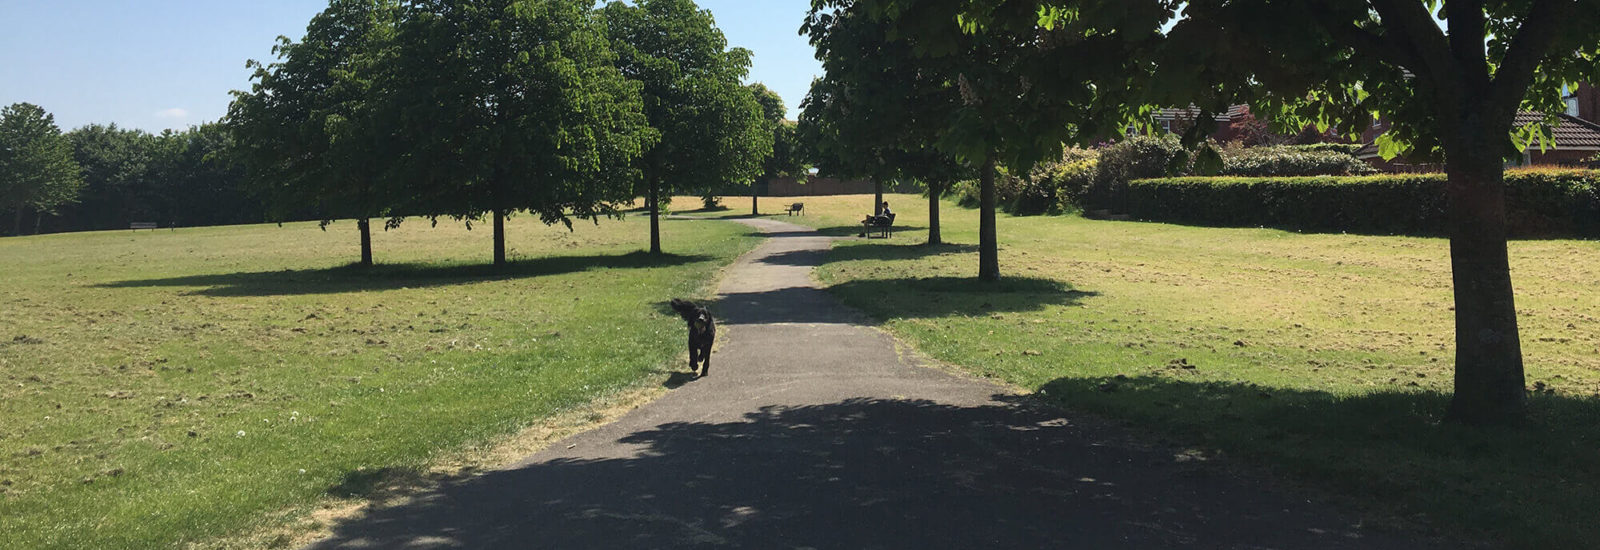 Image of Monks Park